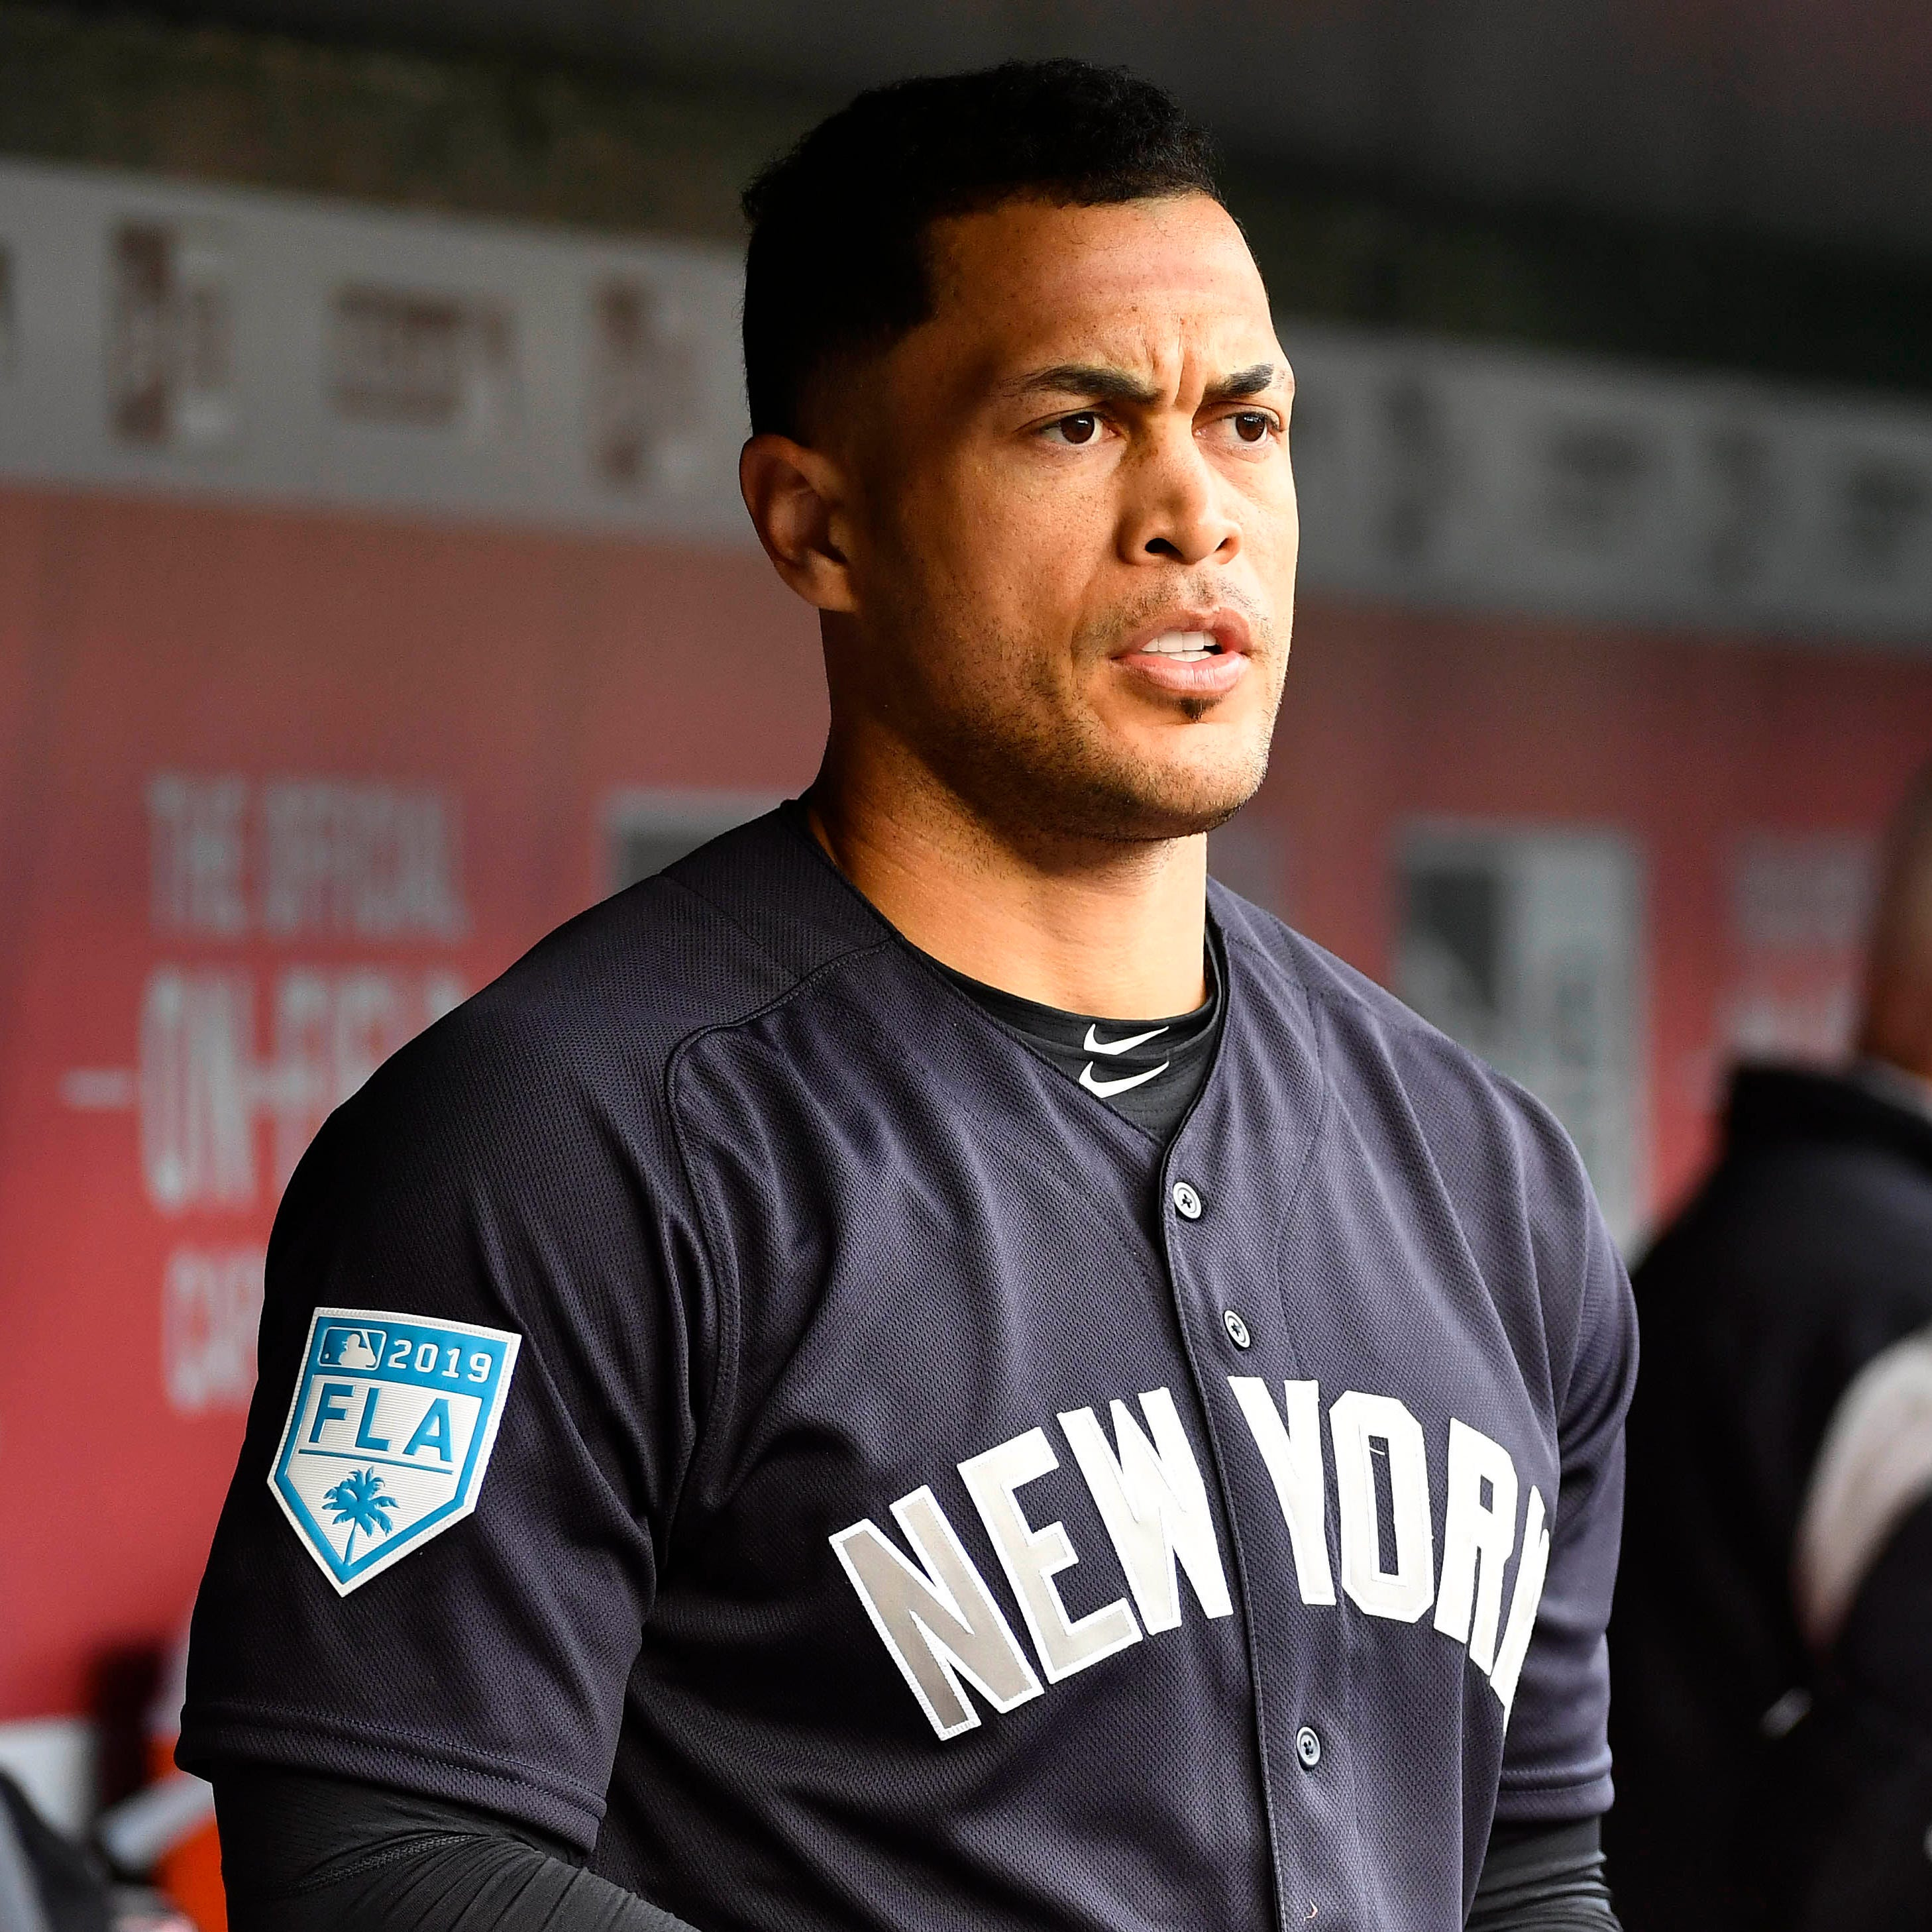 Yankees' Giancarlo Stanton gets back in swing of things, but can't yet pinpoint his return